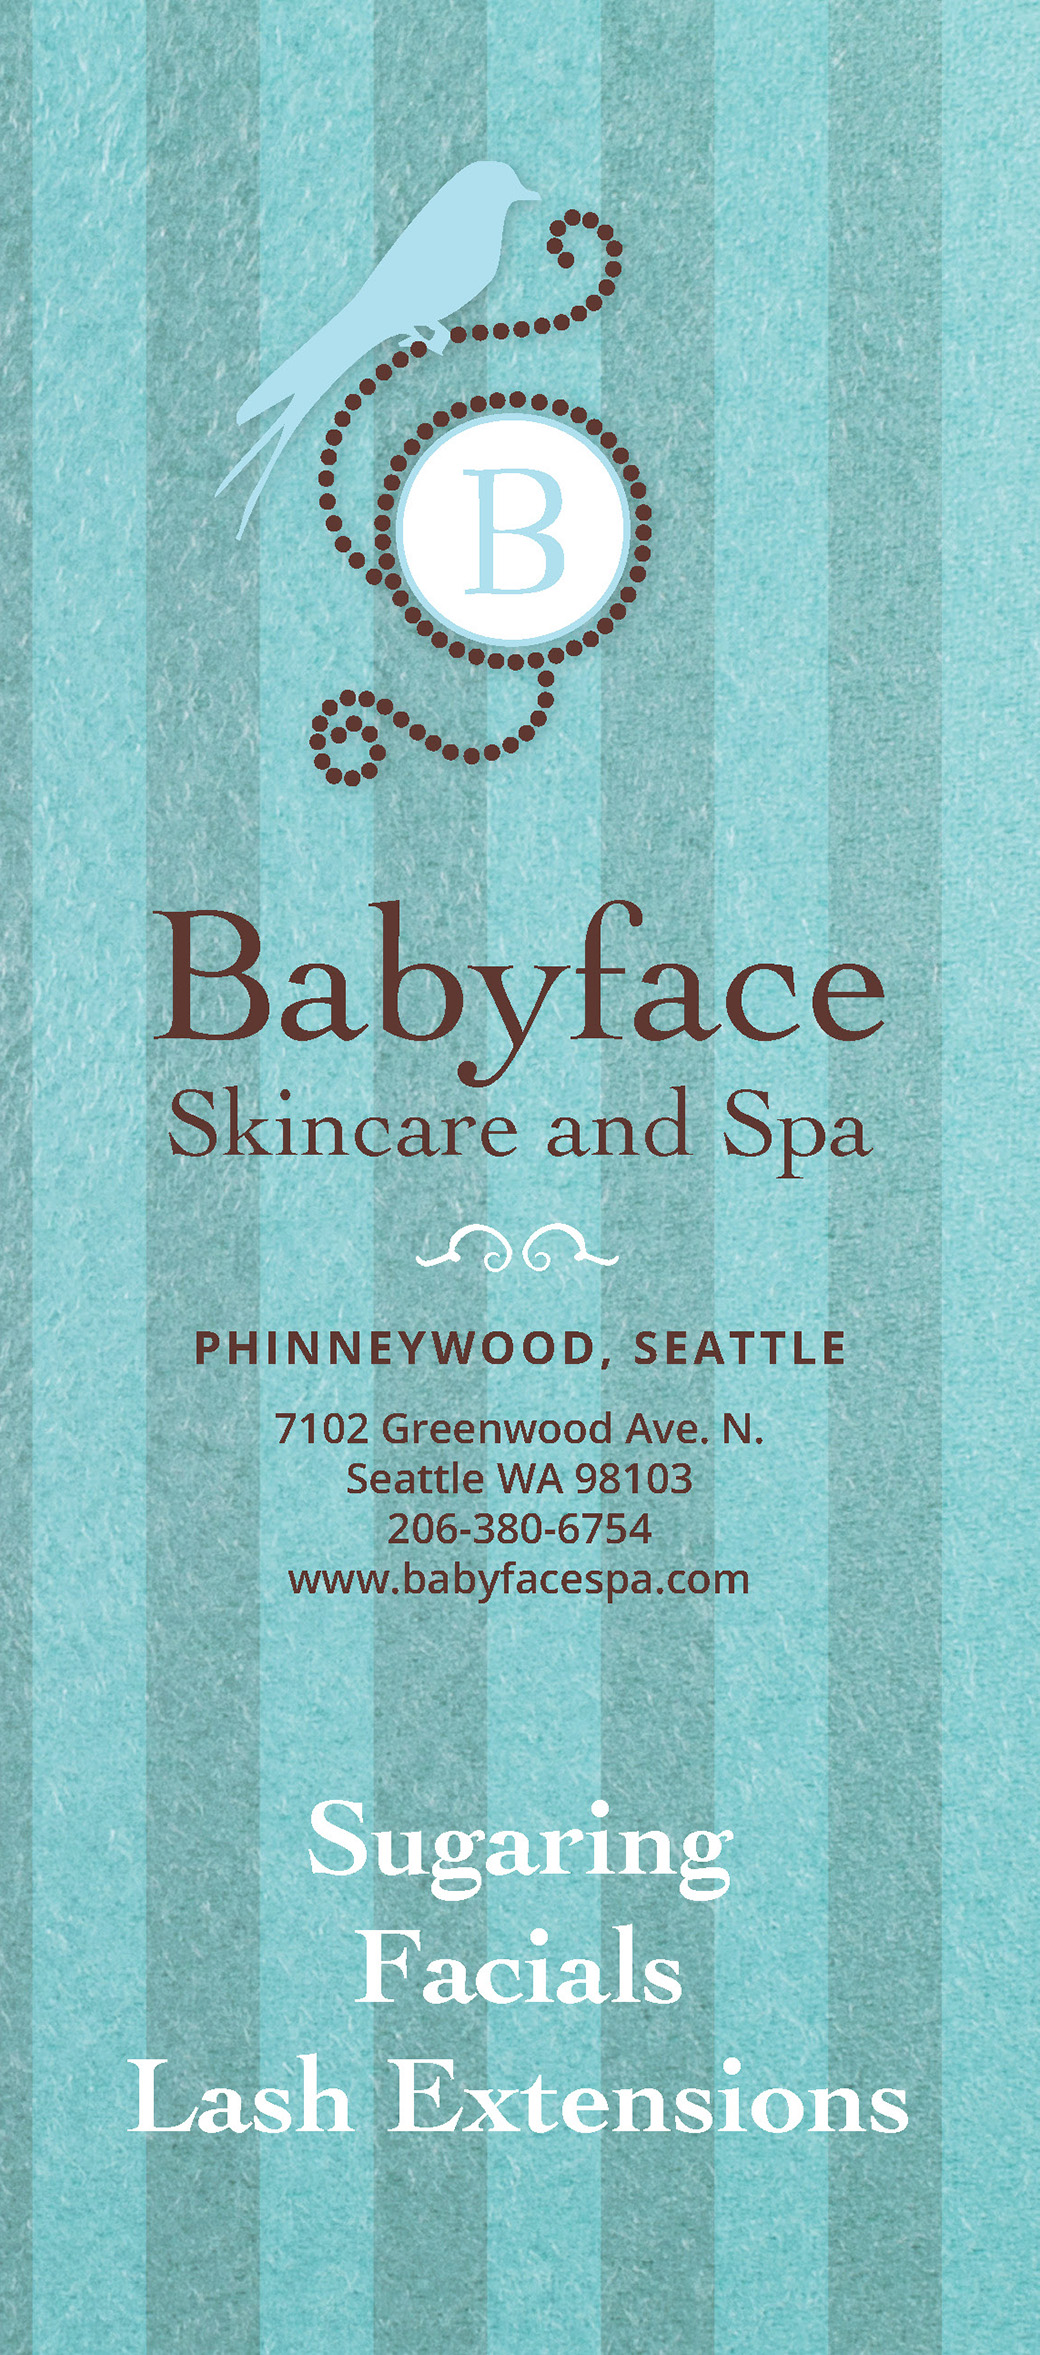 Babyface Skincare and Spa Brochure Cover